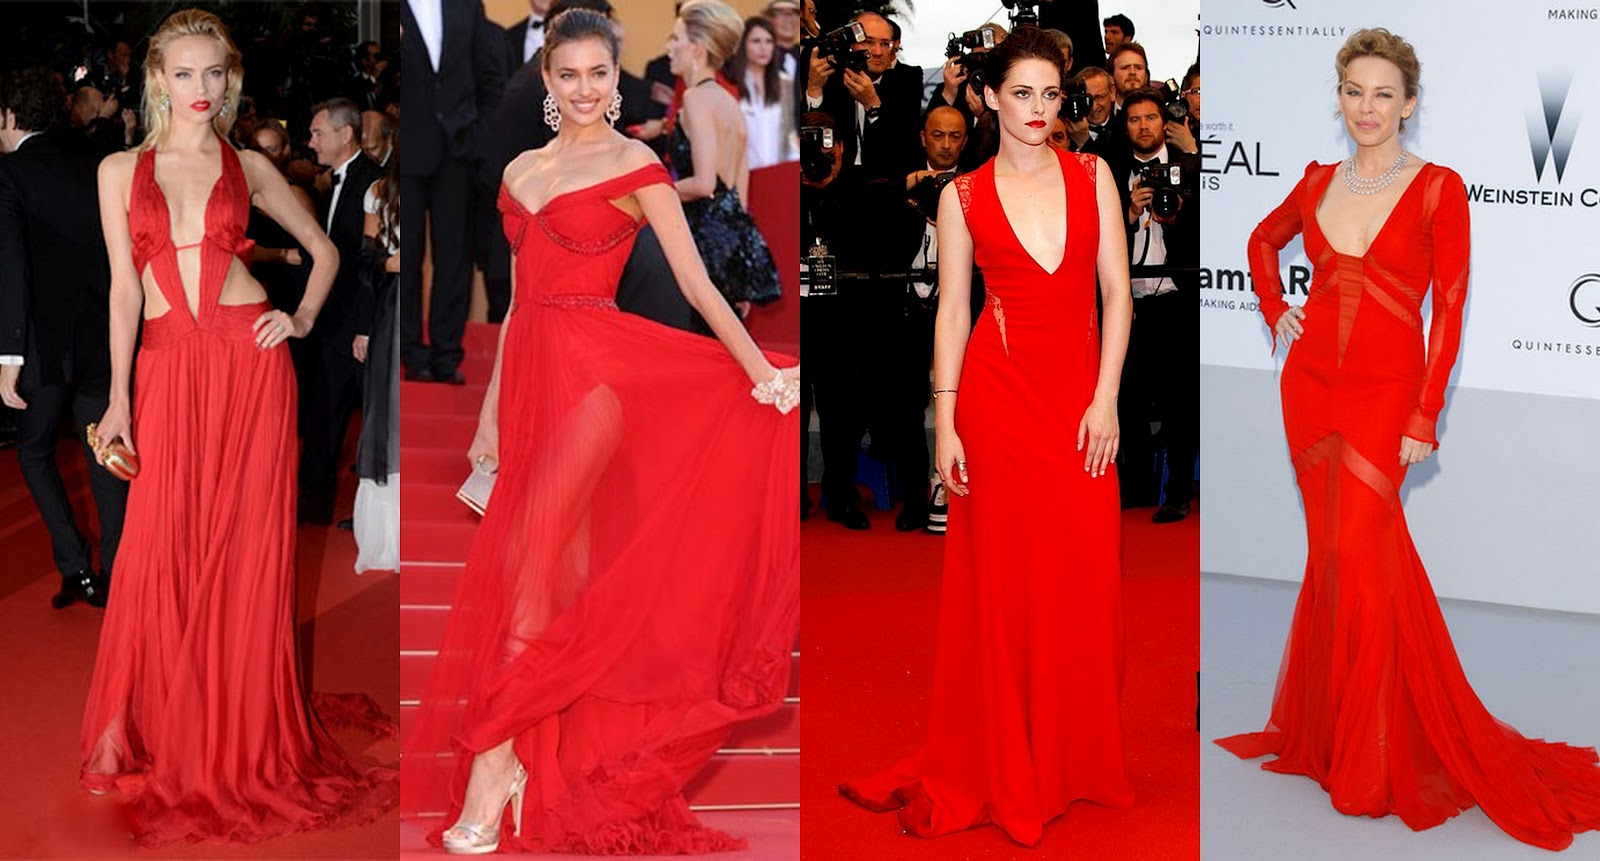 Frills and Thrills: Cannes Film Festival 2012 - Part Three